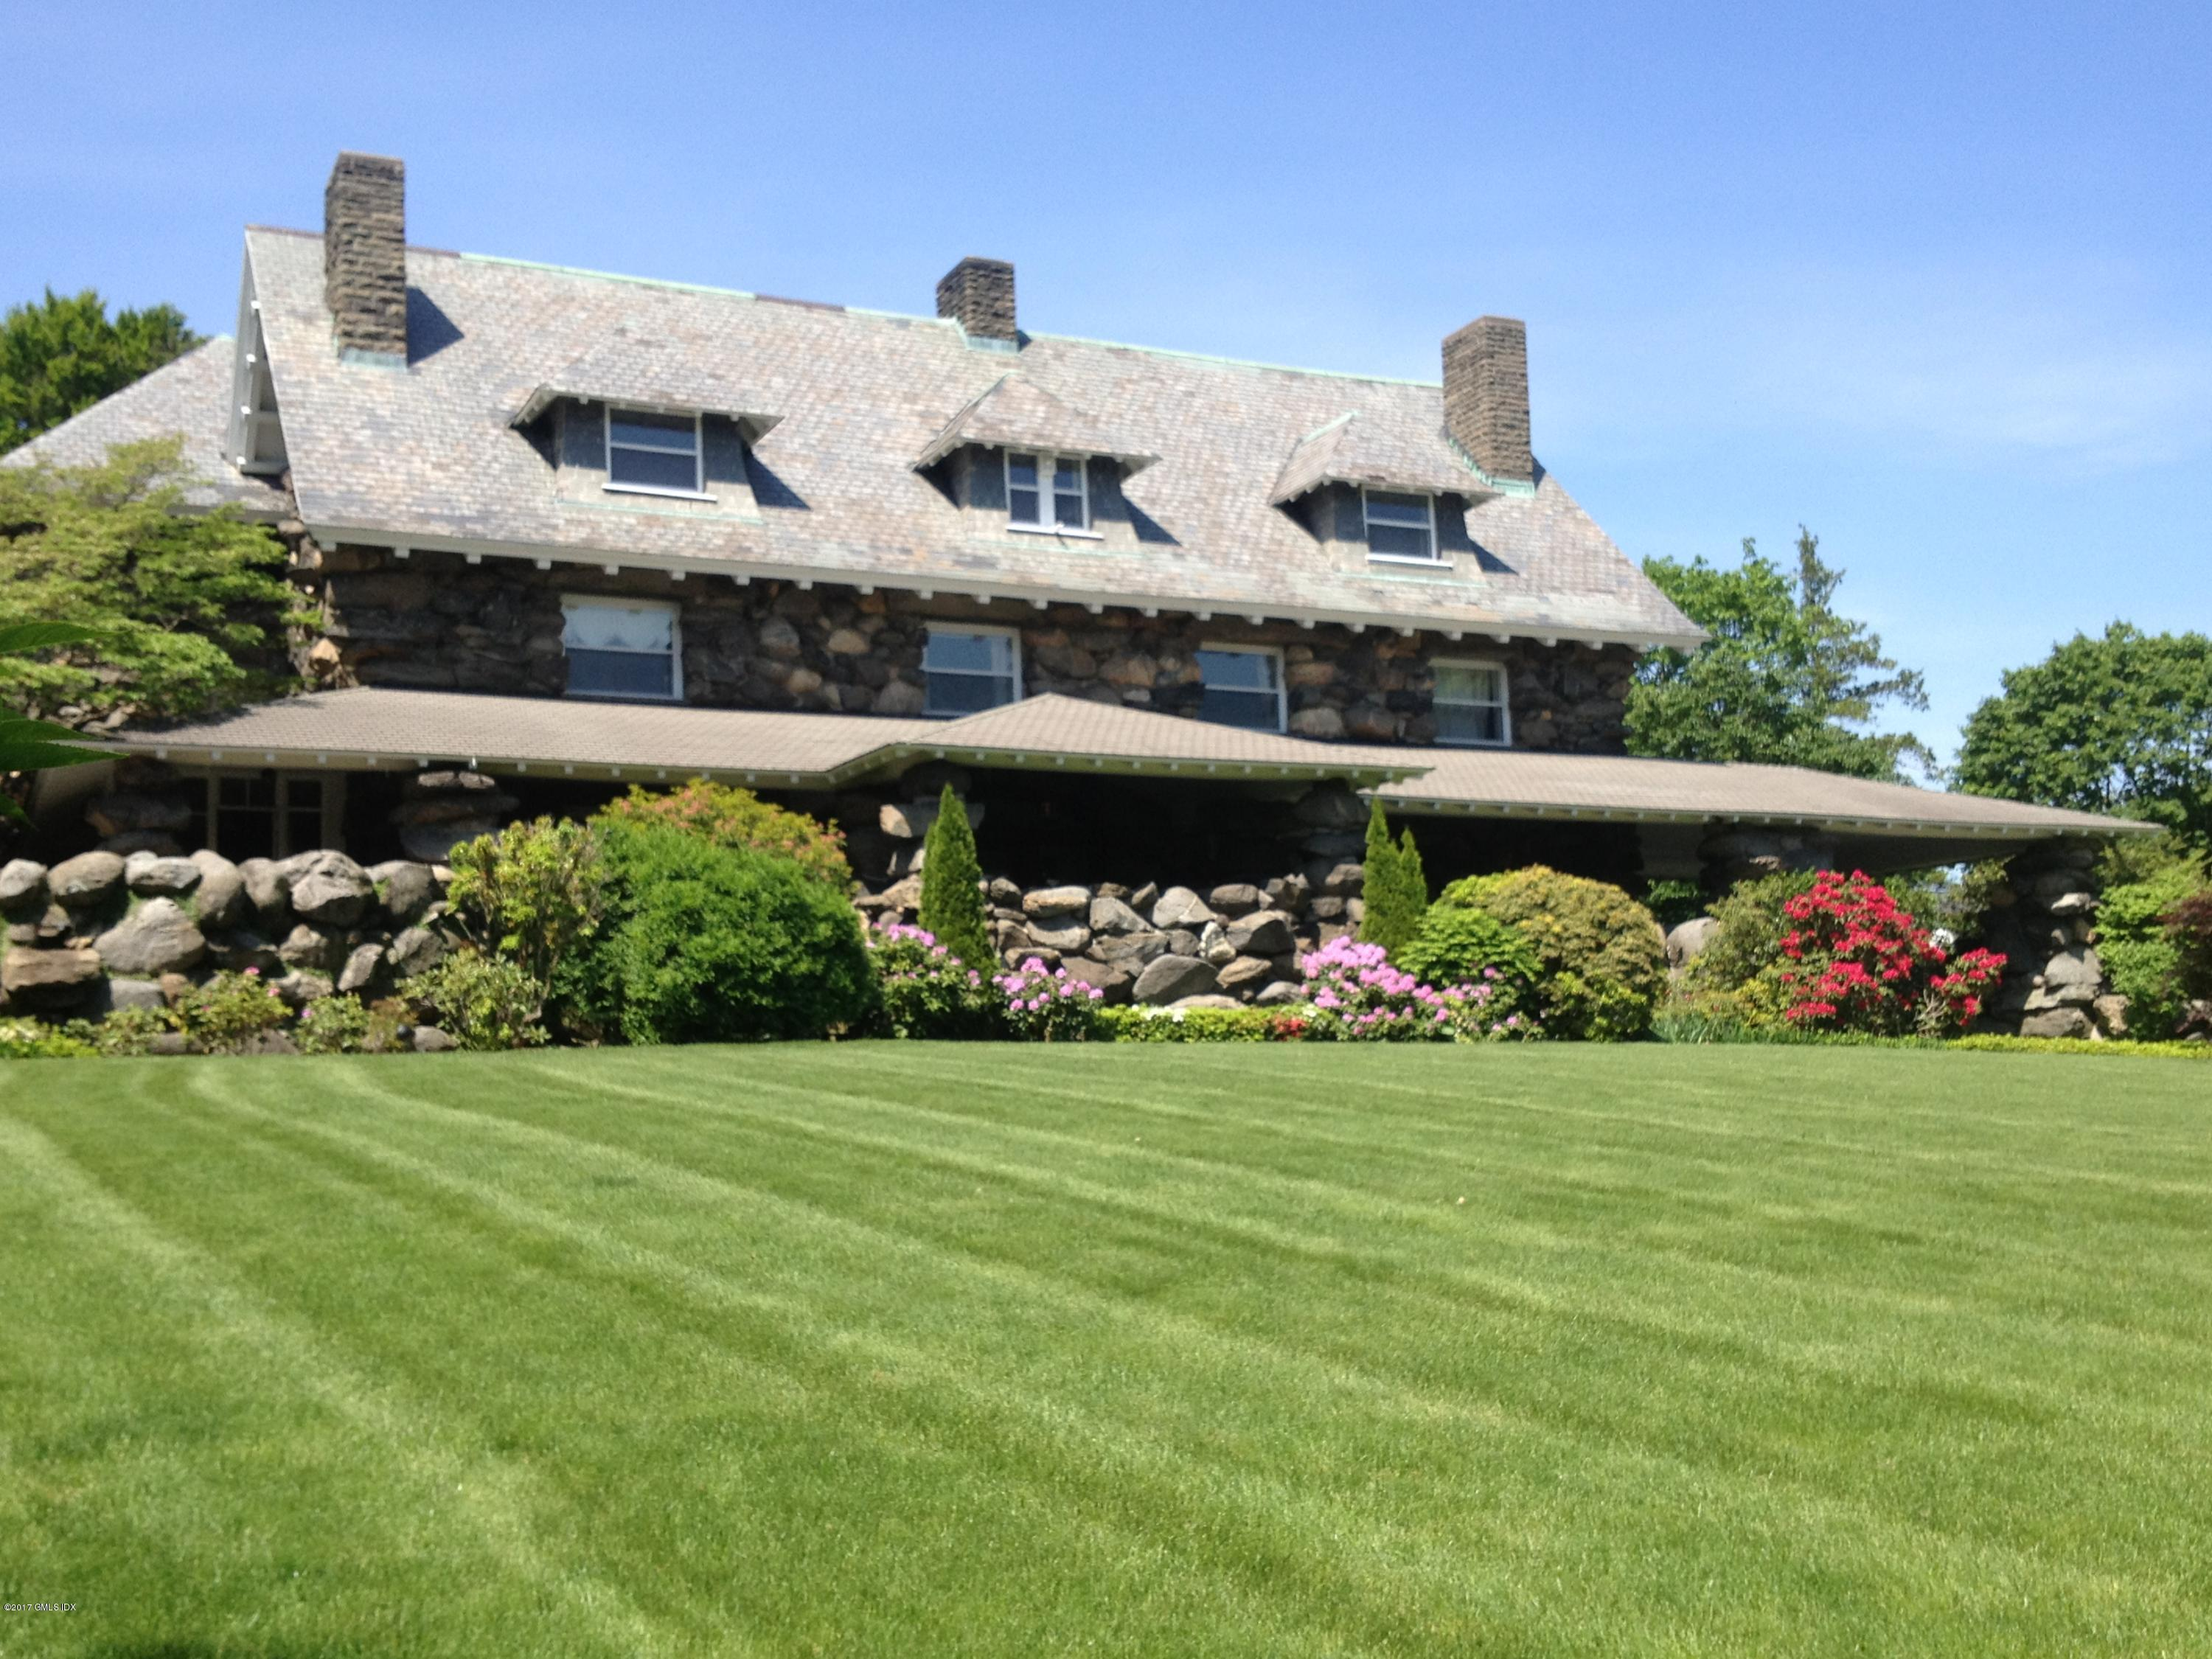 432 Field Point Road,Greenwich,Connecticut 06830,8 Bedrooms Bedrooms,6 BathroomsBathrooms,Single family,Field Point,105206